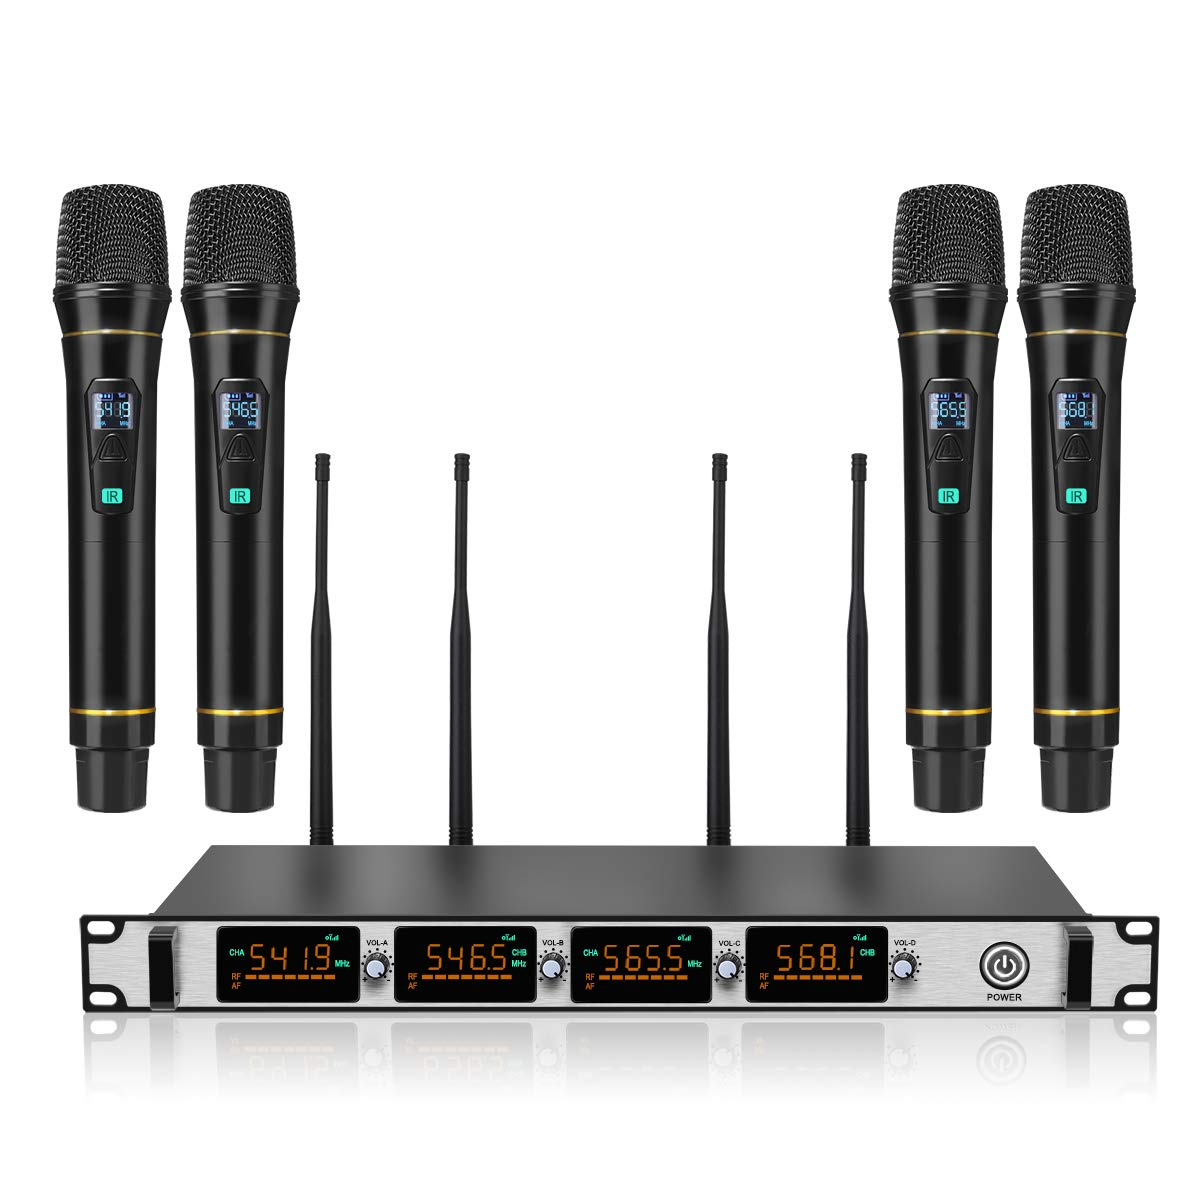 Wireless Microphone System,NASUM 4-Channel Metal UHF Wireless Microphone System,Cordless Karaoke Microphone Set, LCD Display Professional Home KTV Set for Party,Karaoke,Wedding,Classroom, Church by NASUM